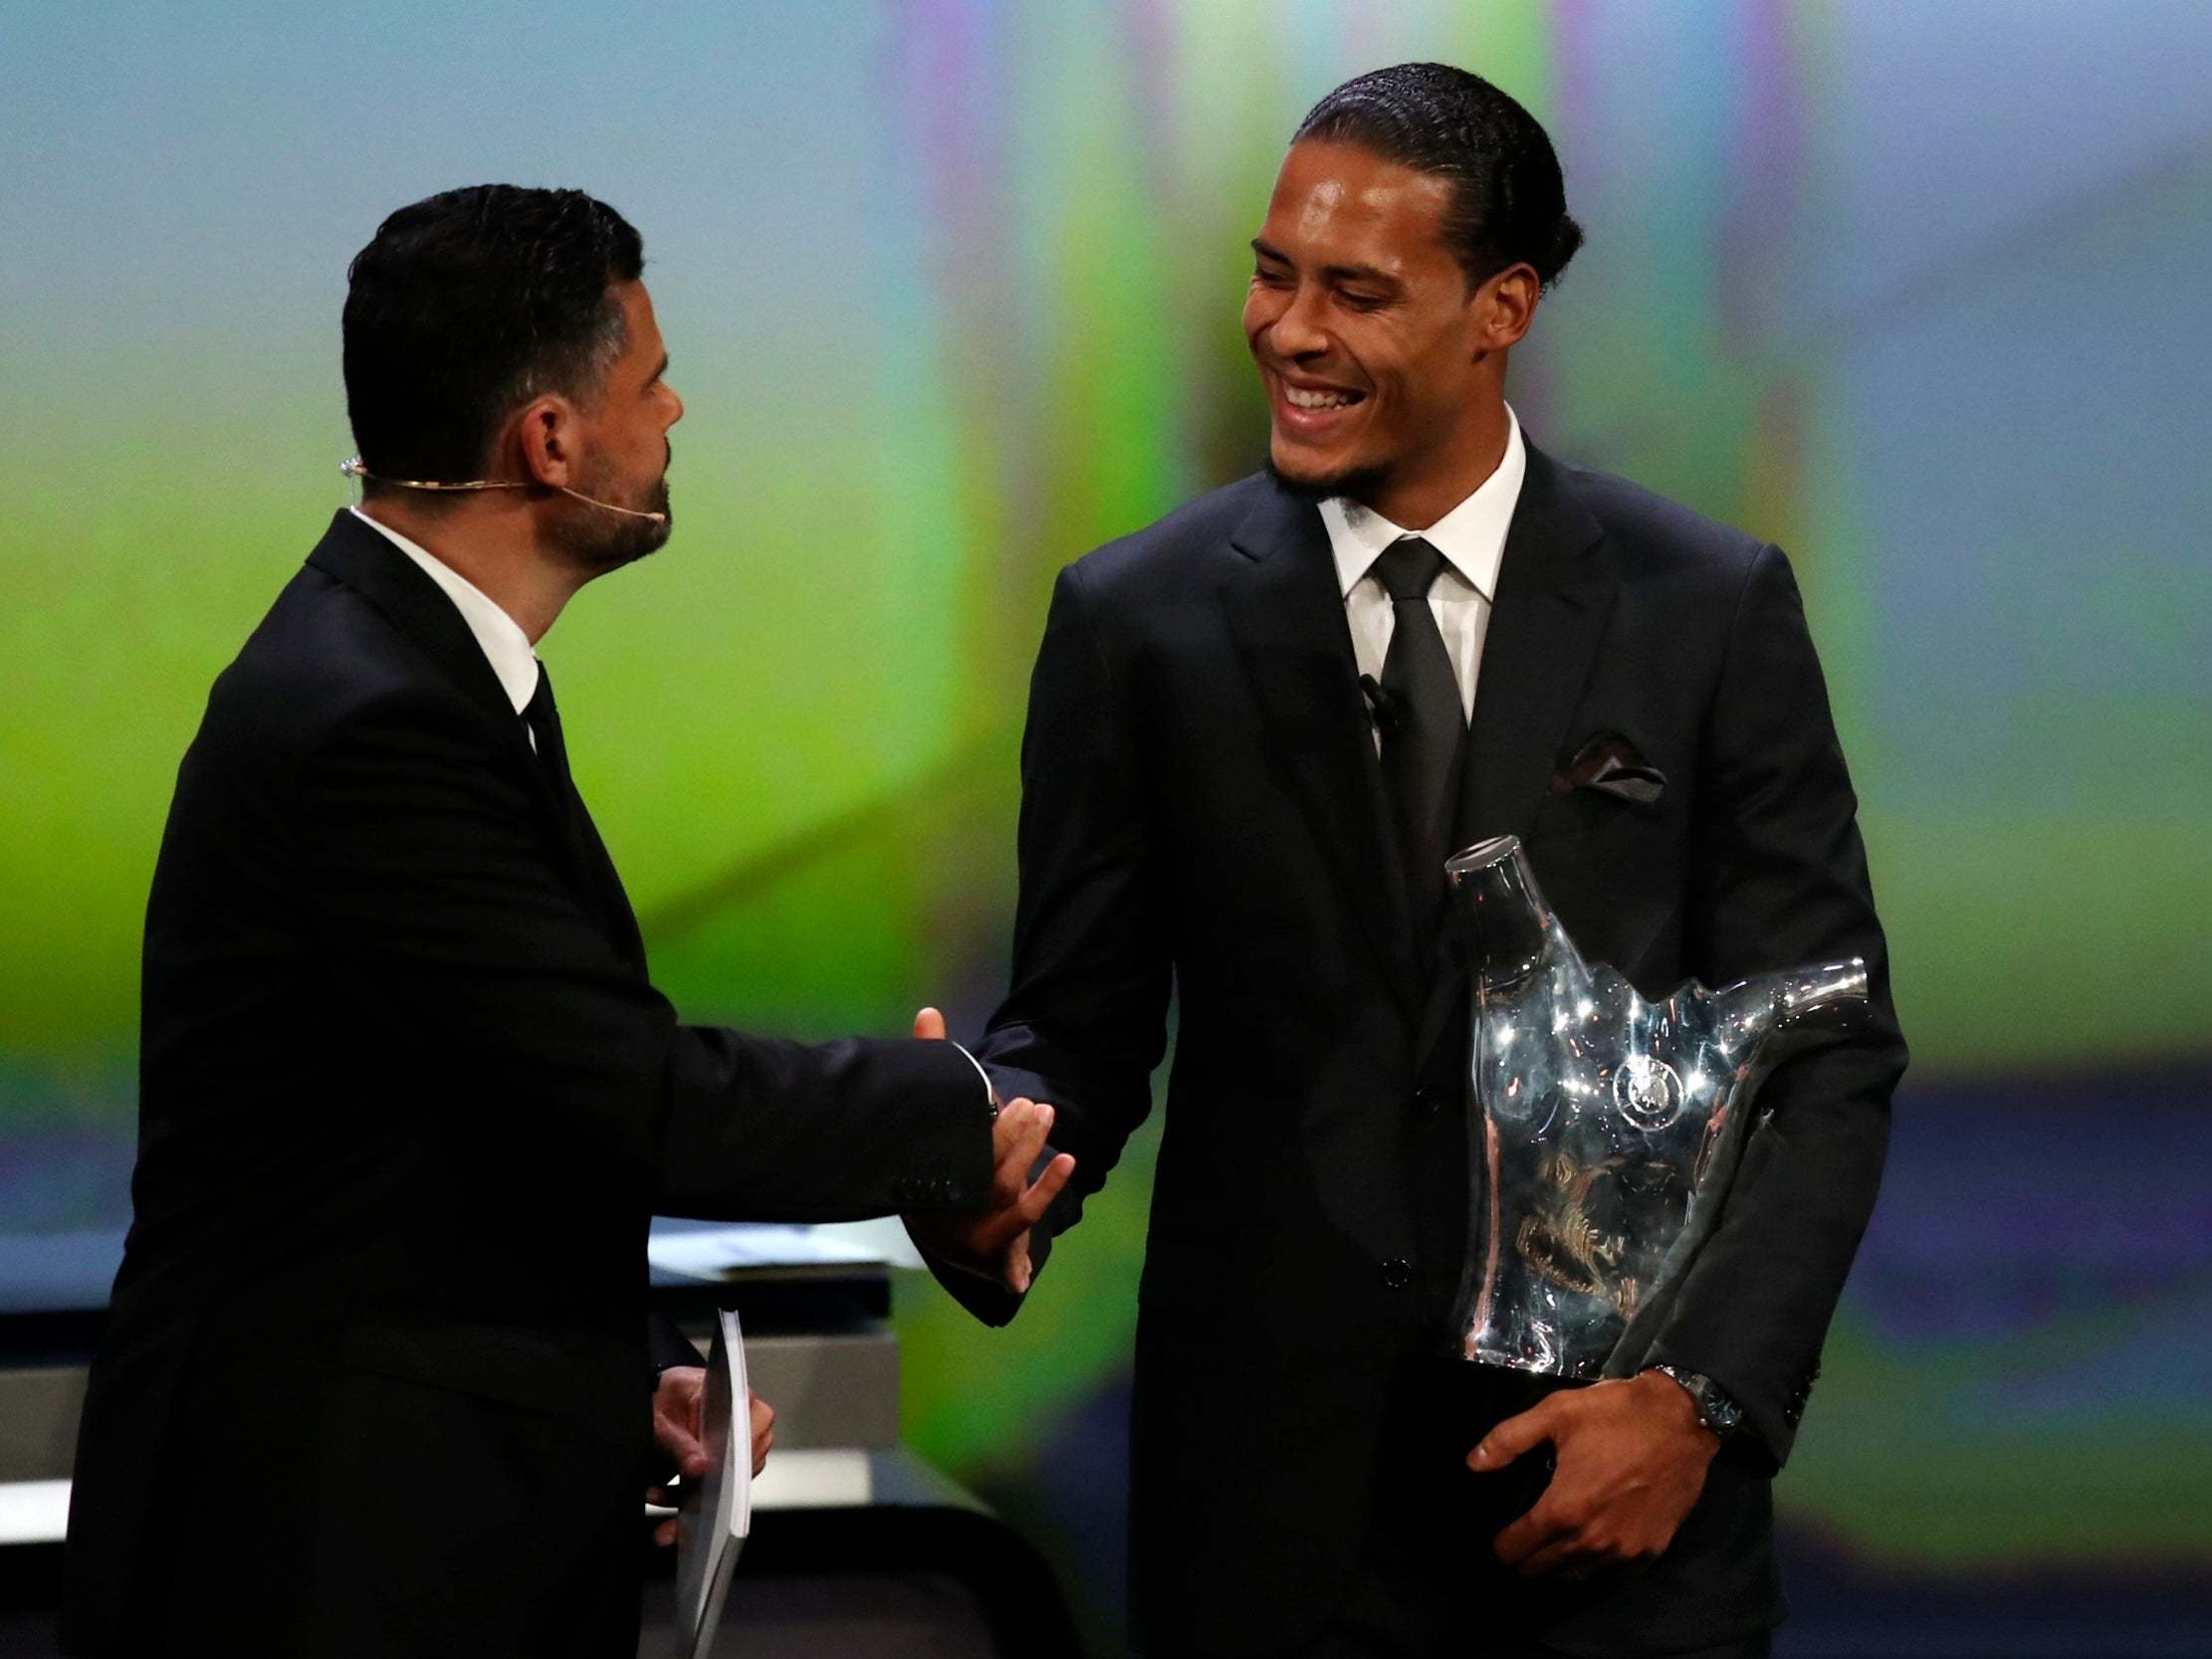 Virgil Van Dijk Wins Uefa Men S Player Of The Year Award After Beating Cristiano Ronaldo And Lionel Messi The Independent The Independent